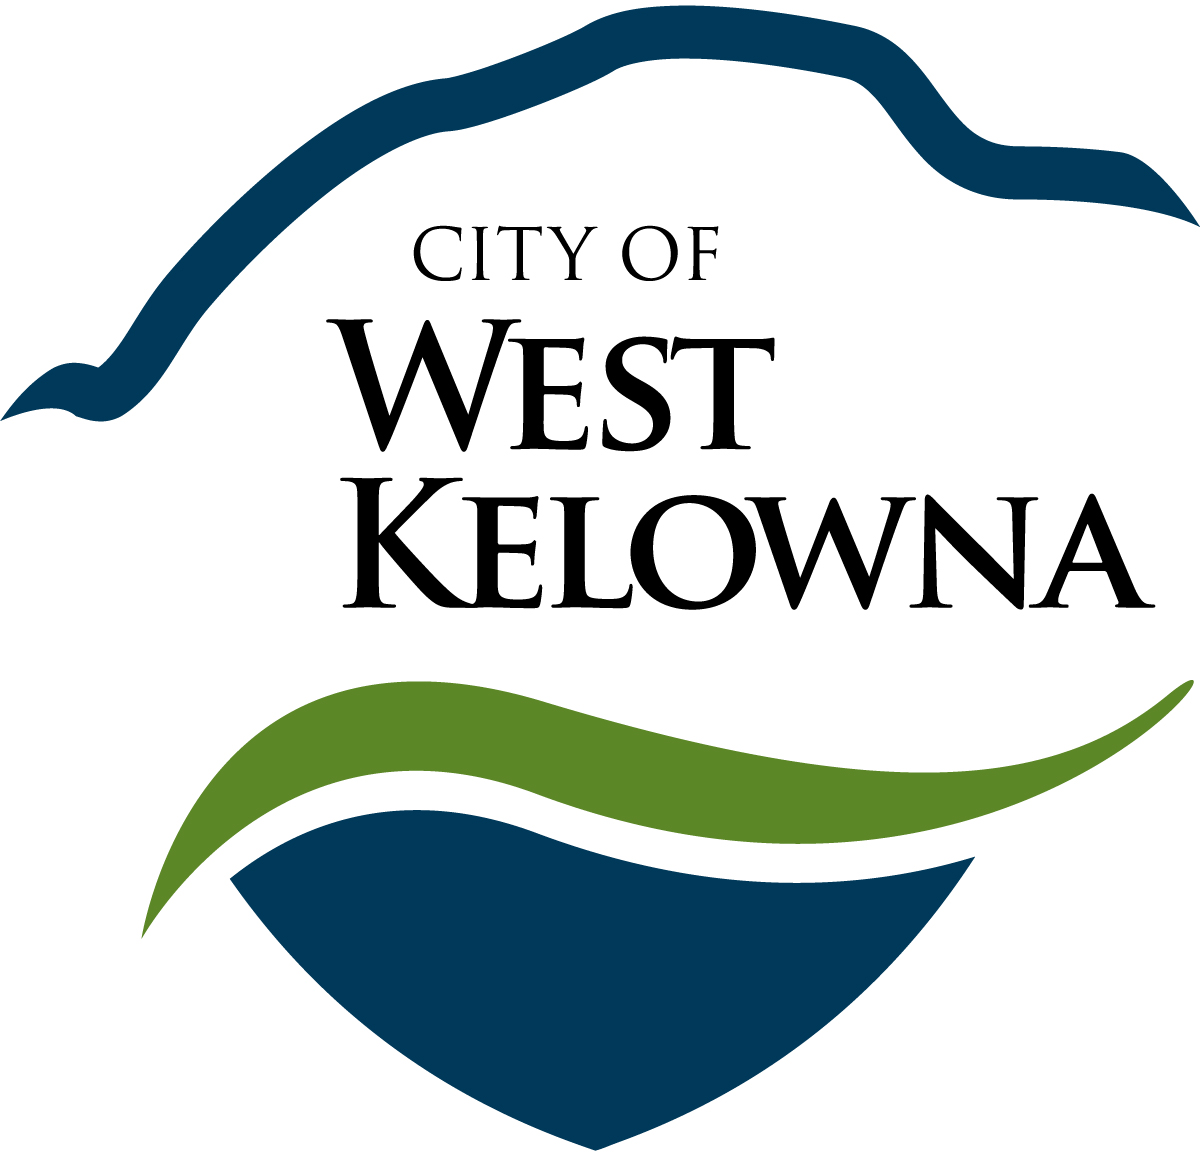 City of West Kelowna Website image